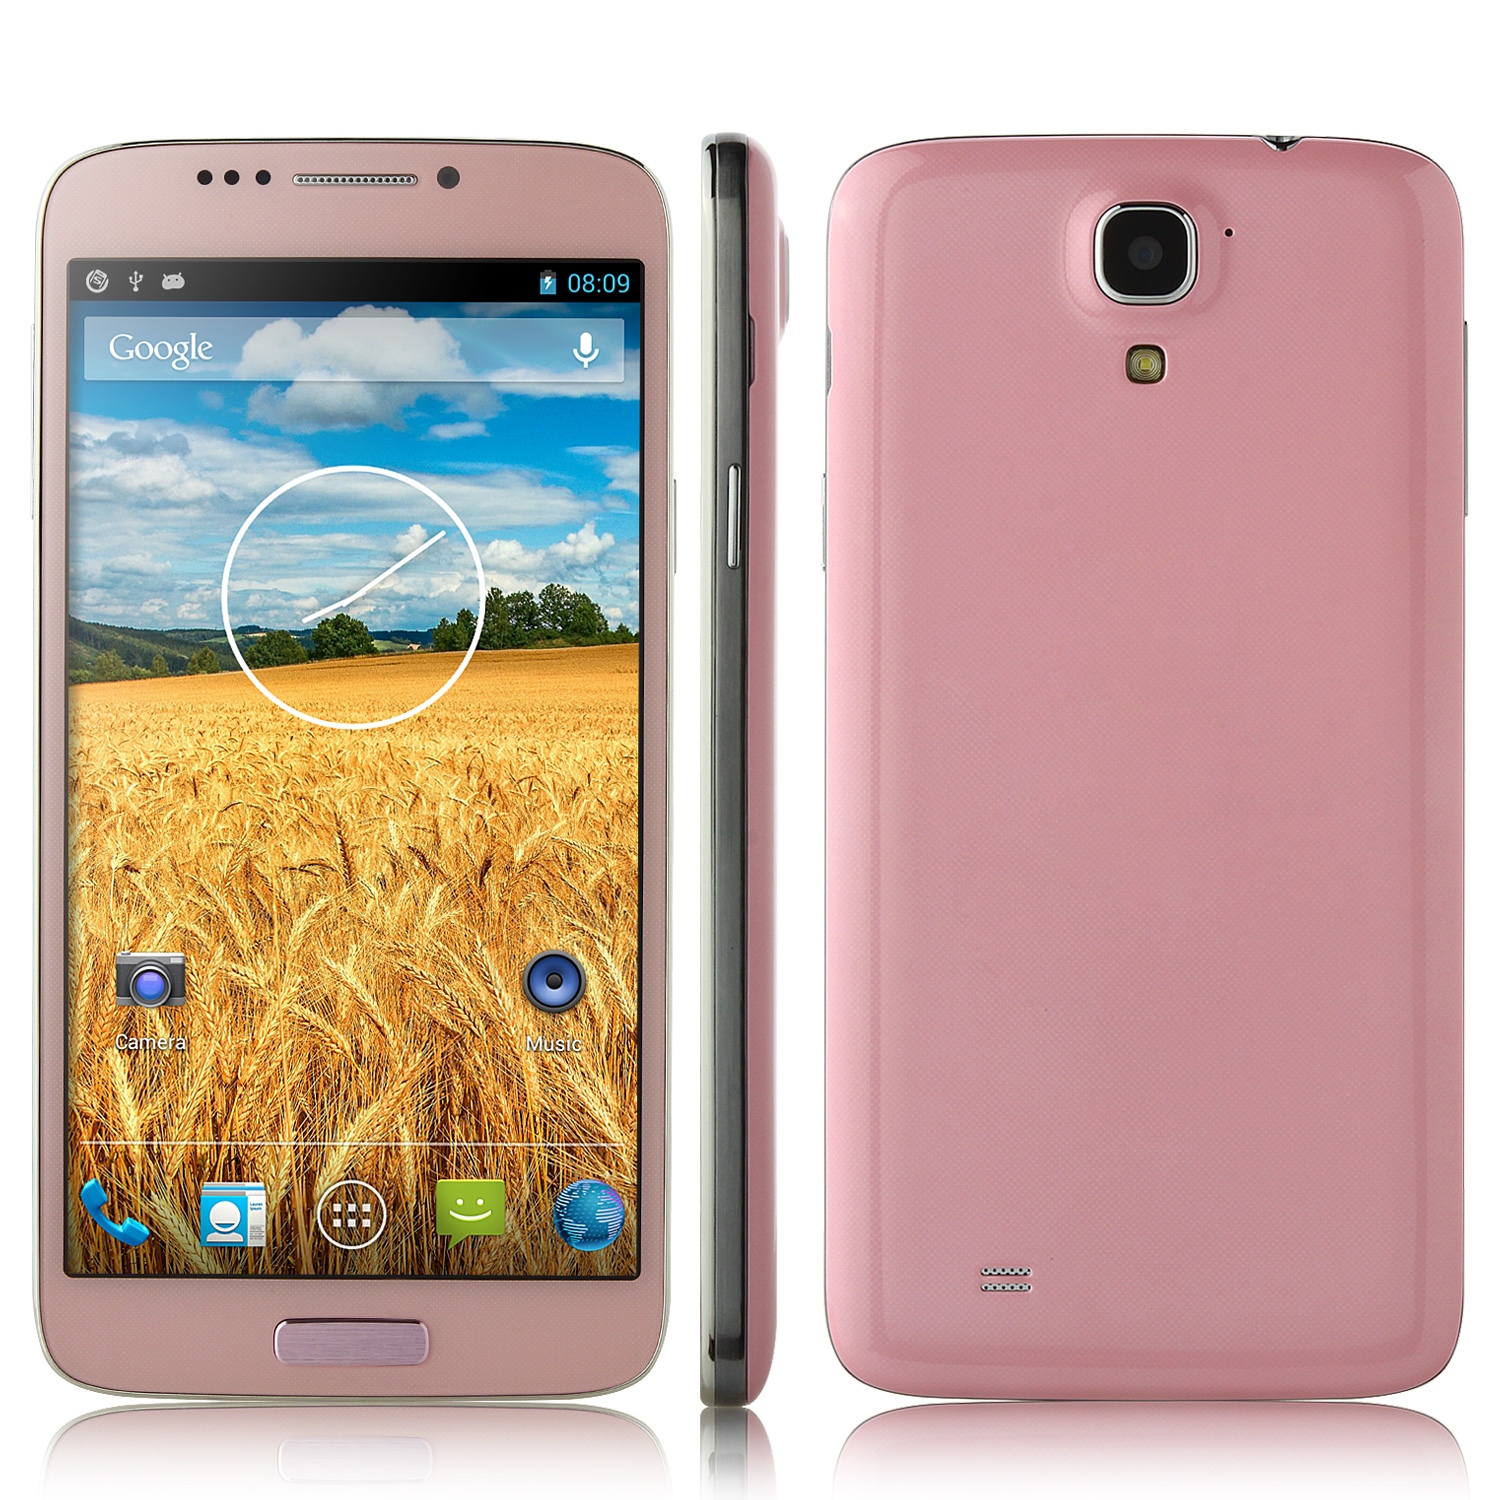 Brand New Tianhe H8 Smartphone MTK6592 6.0 Inch HD IPS Screen Android 4.2 OTG 1GB 16GB